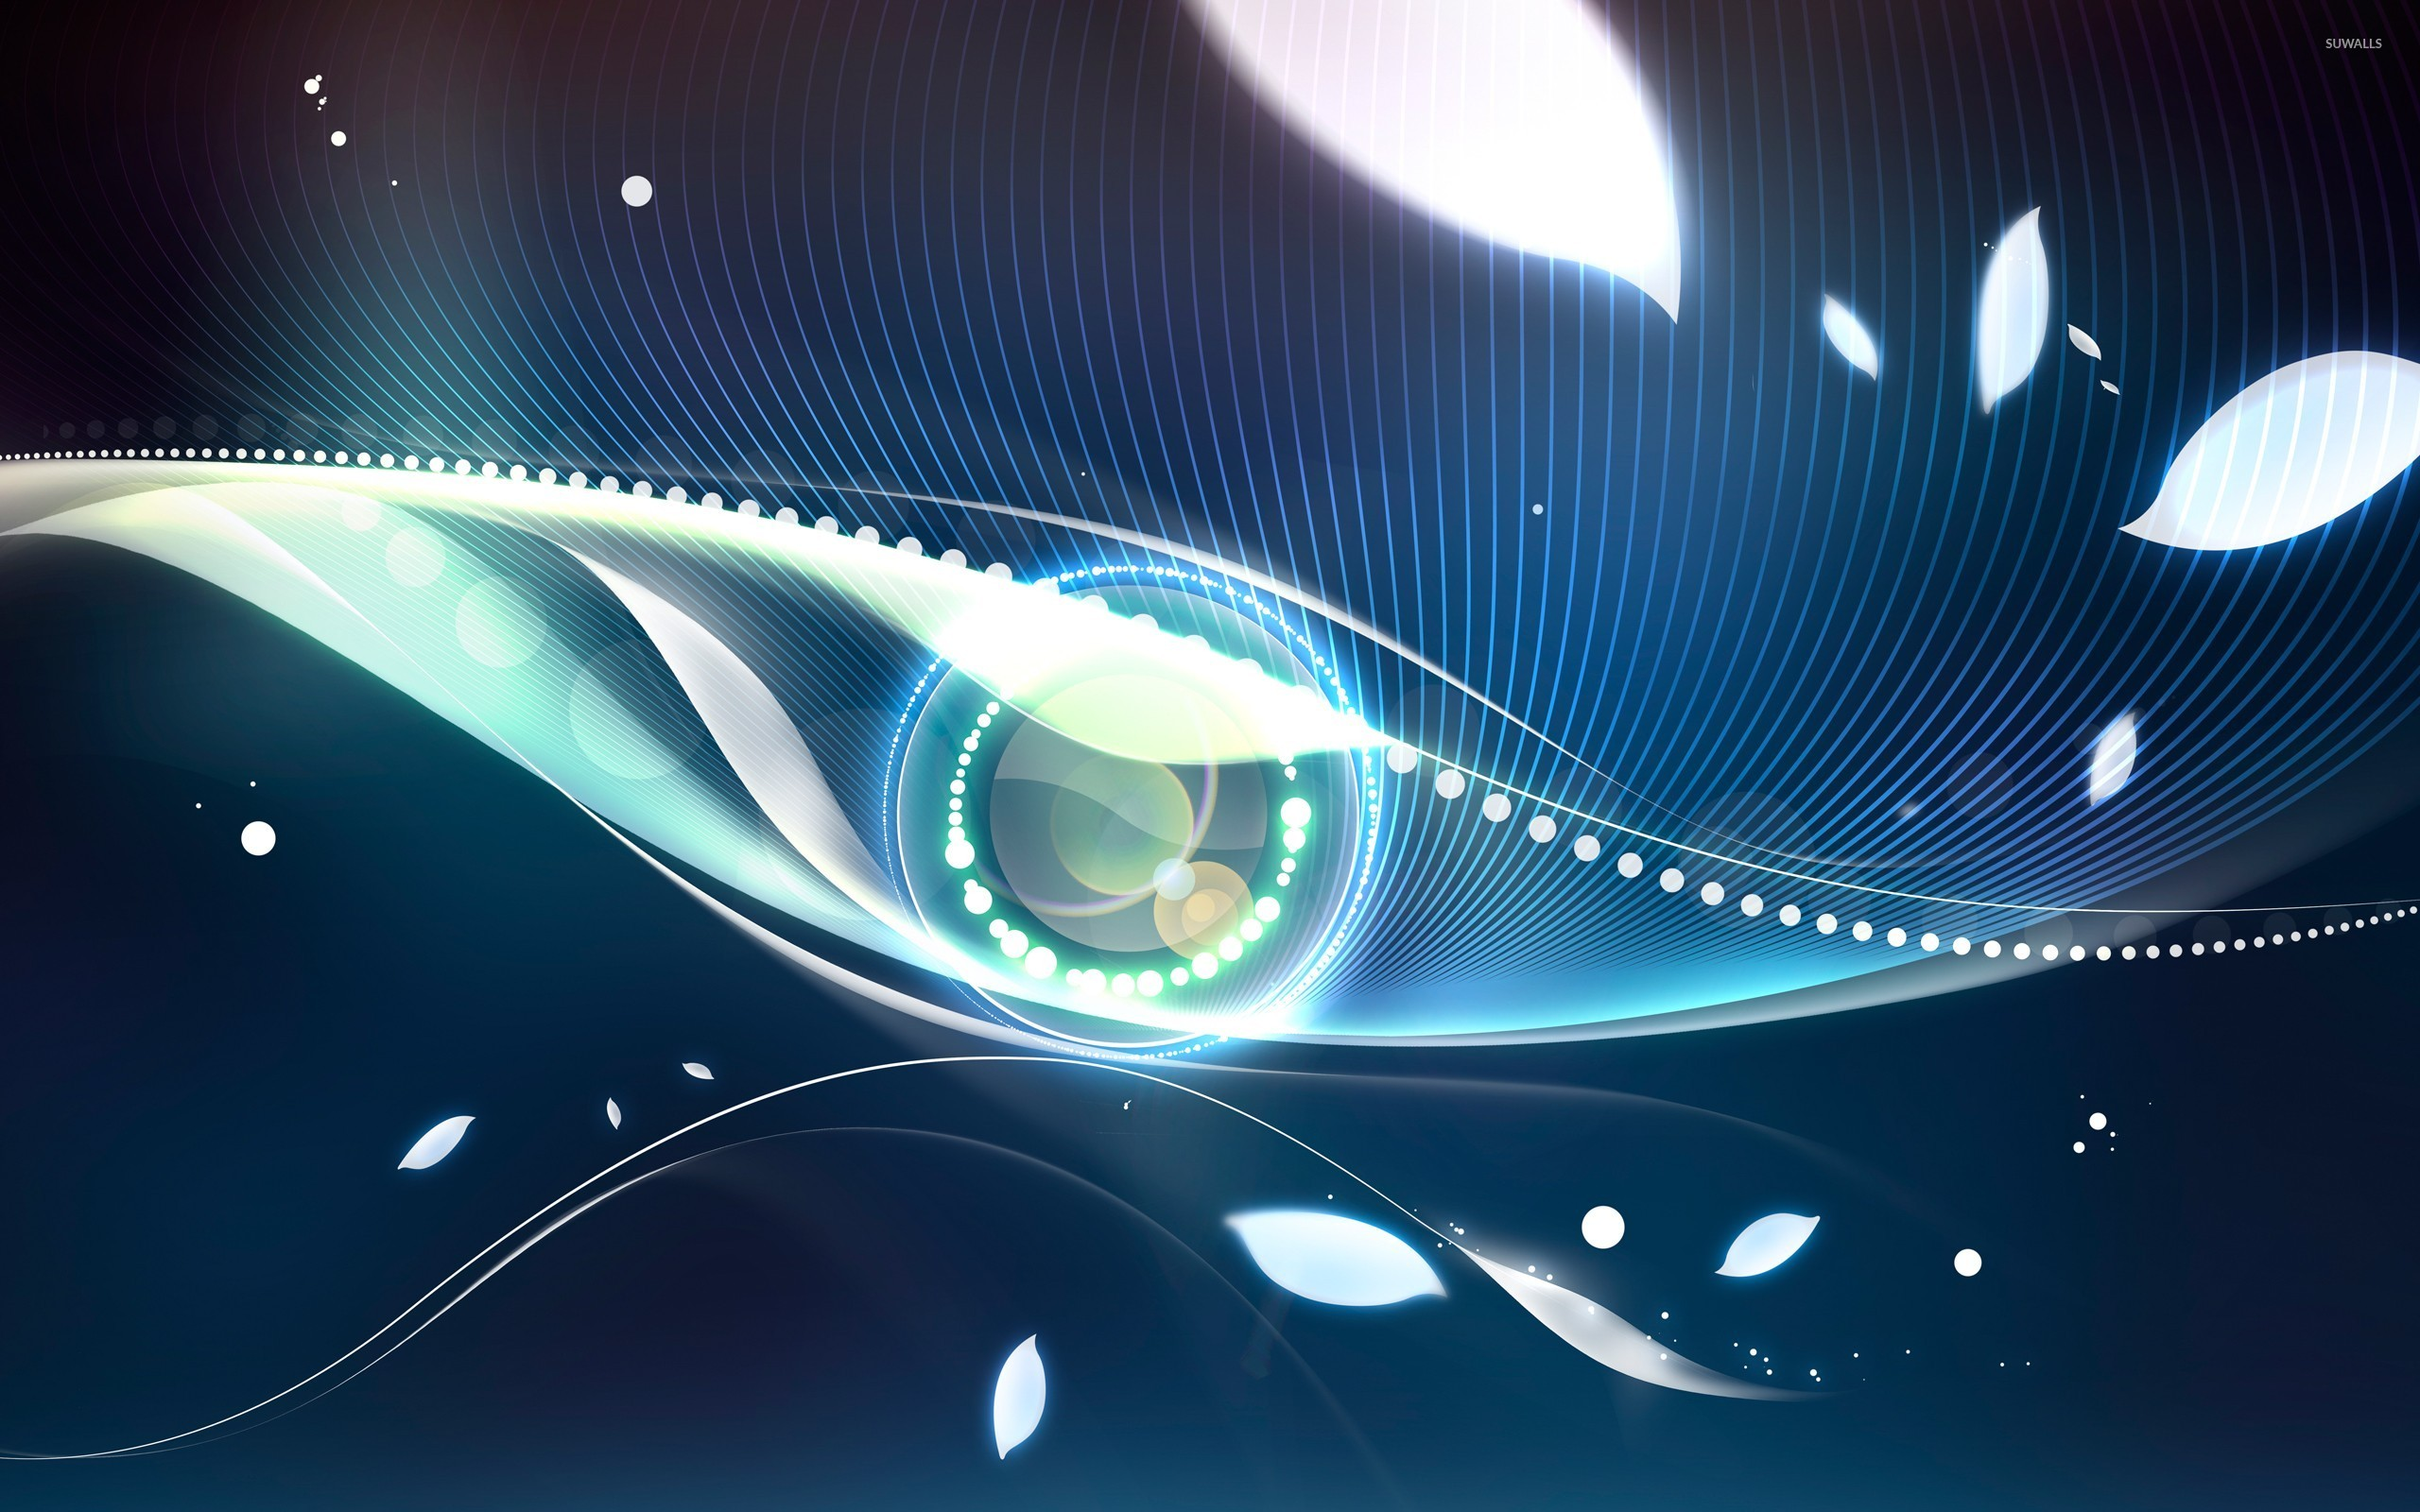 blue eye surrounded by glowing leaves wallpaper - abstract wallpapers